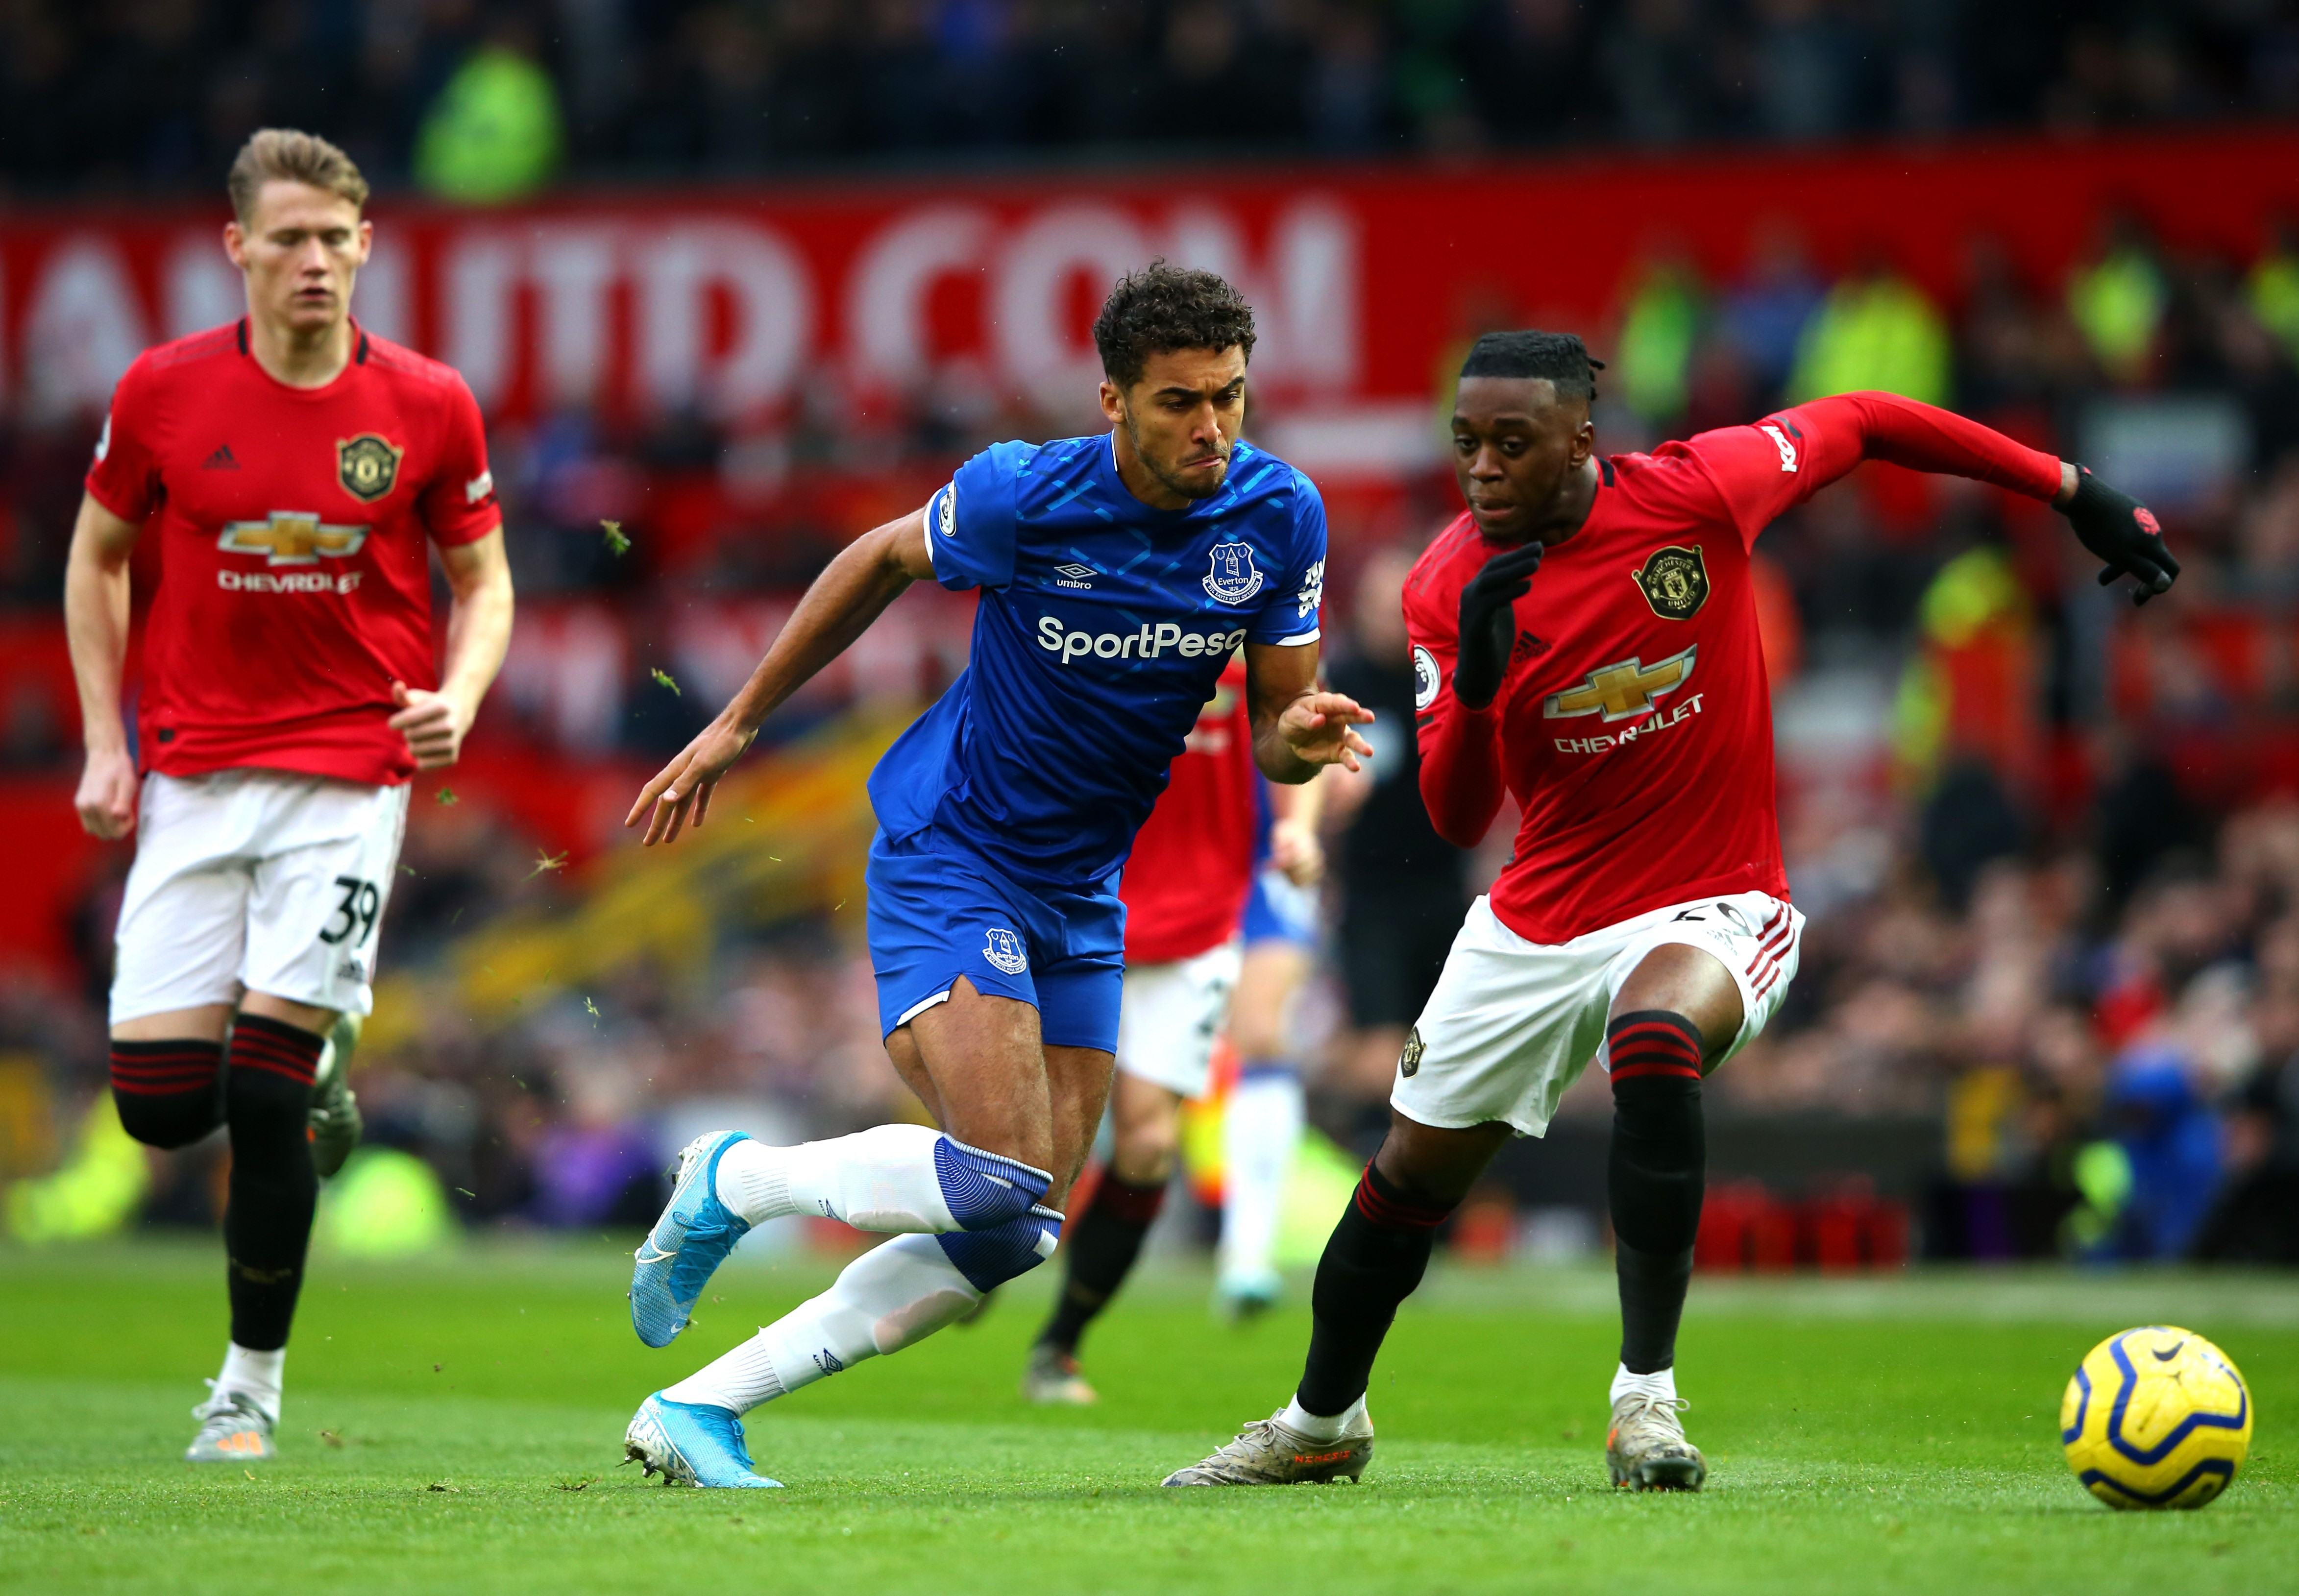 Dominic Calvert-Lewin of Everton battles for possession with Aaron Wan-Bissaka of Manchester United during the Premier League match between Manchester United and Everton FC at Old Trafford on December 15, 2019 in Manchester, United Kingdom.